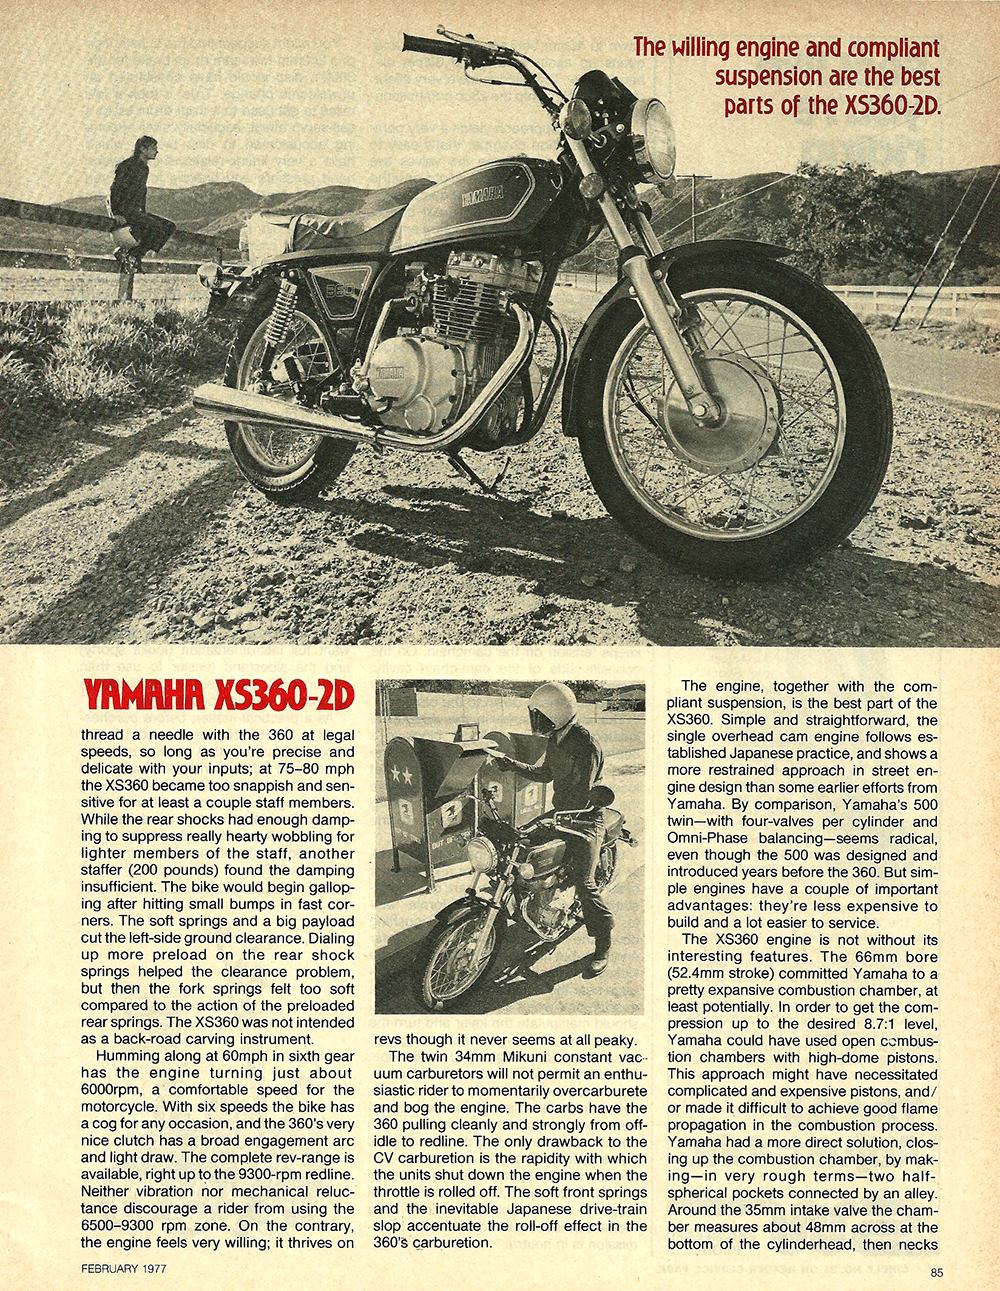 1977 Yamaha XS360-2D road test 5.jpg